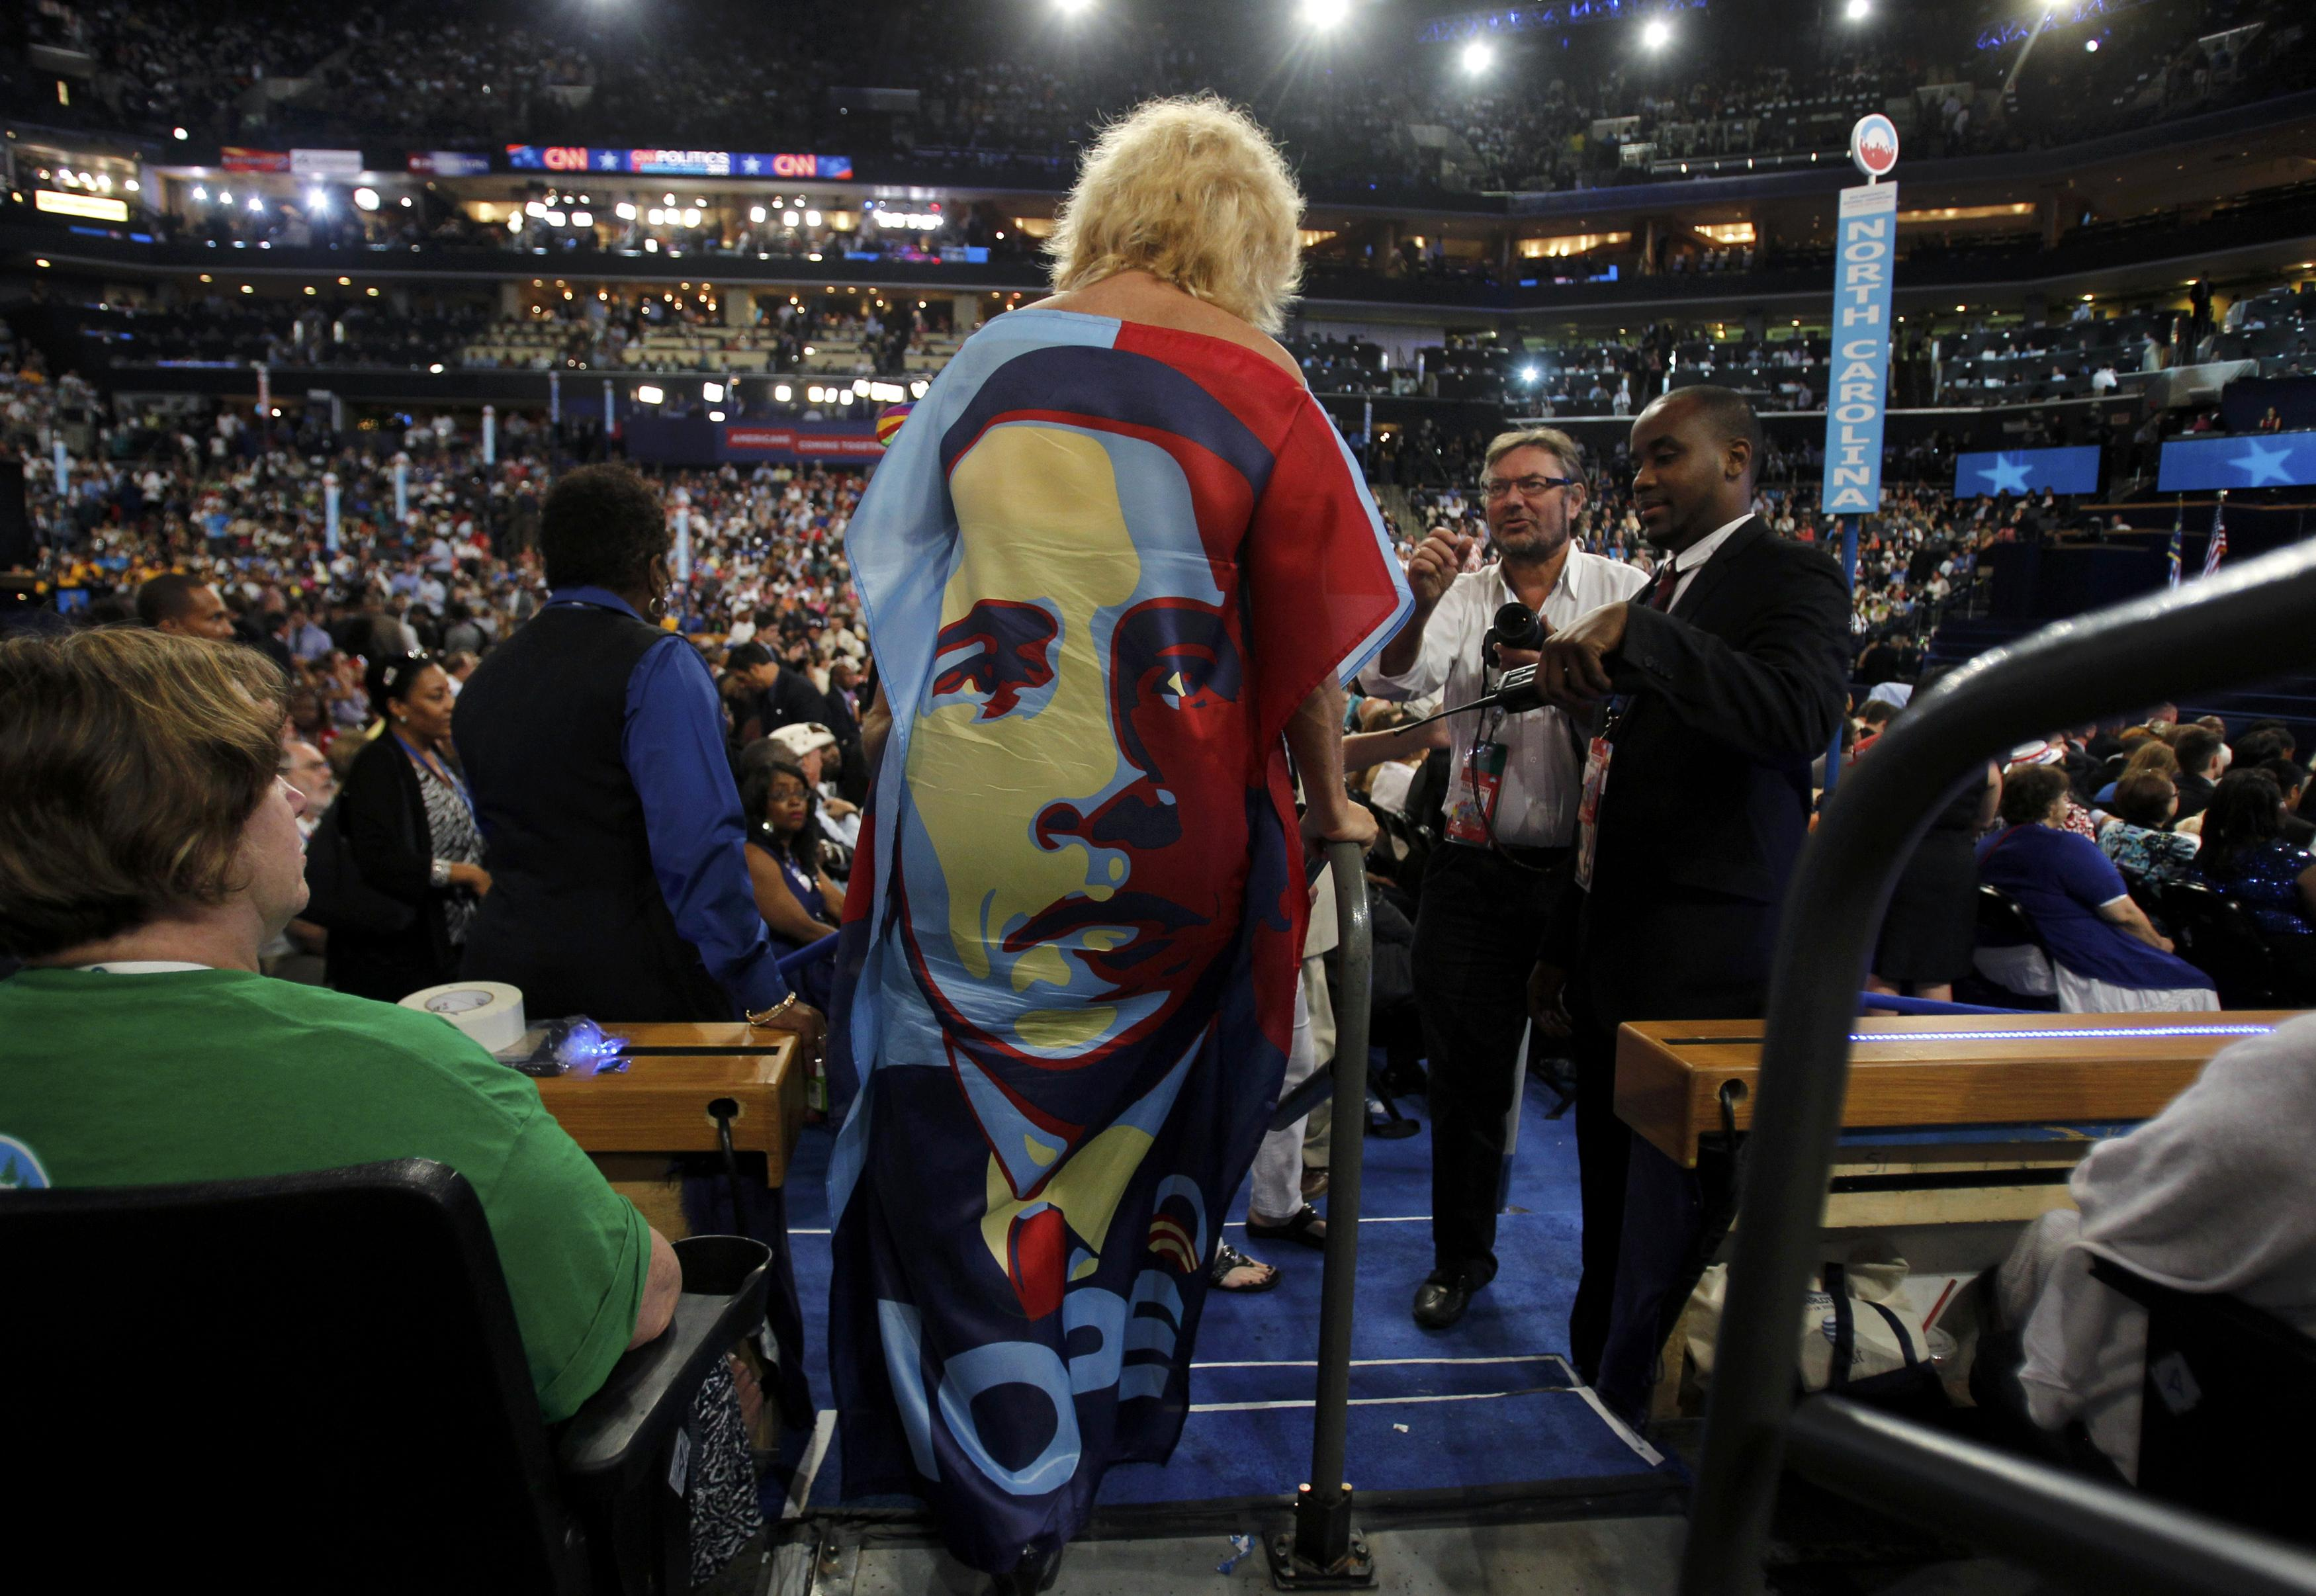 A delegate wears a Barack Obama dress. (Jessica Rinaldi/Reuters)